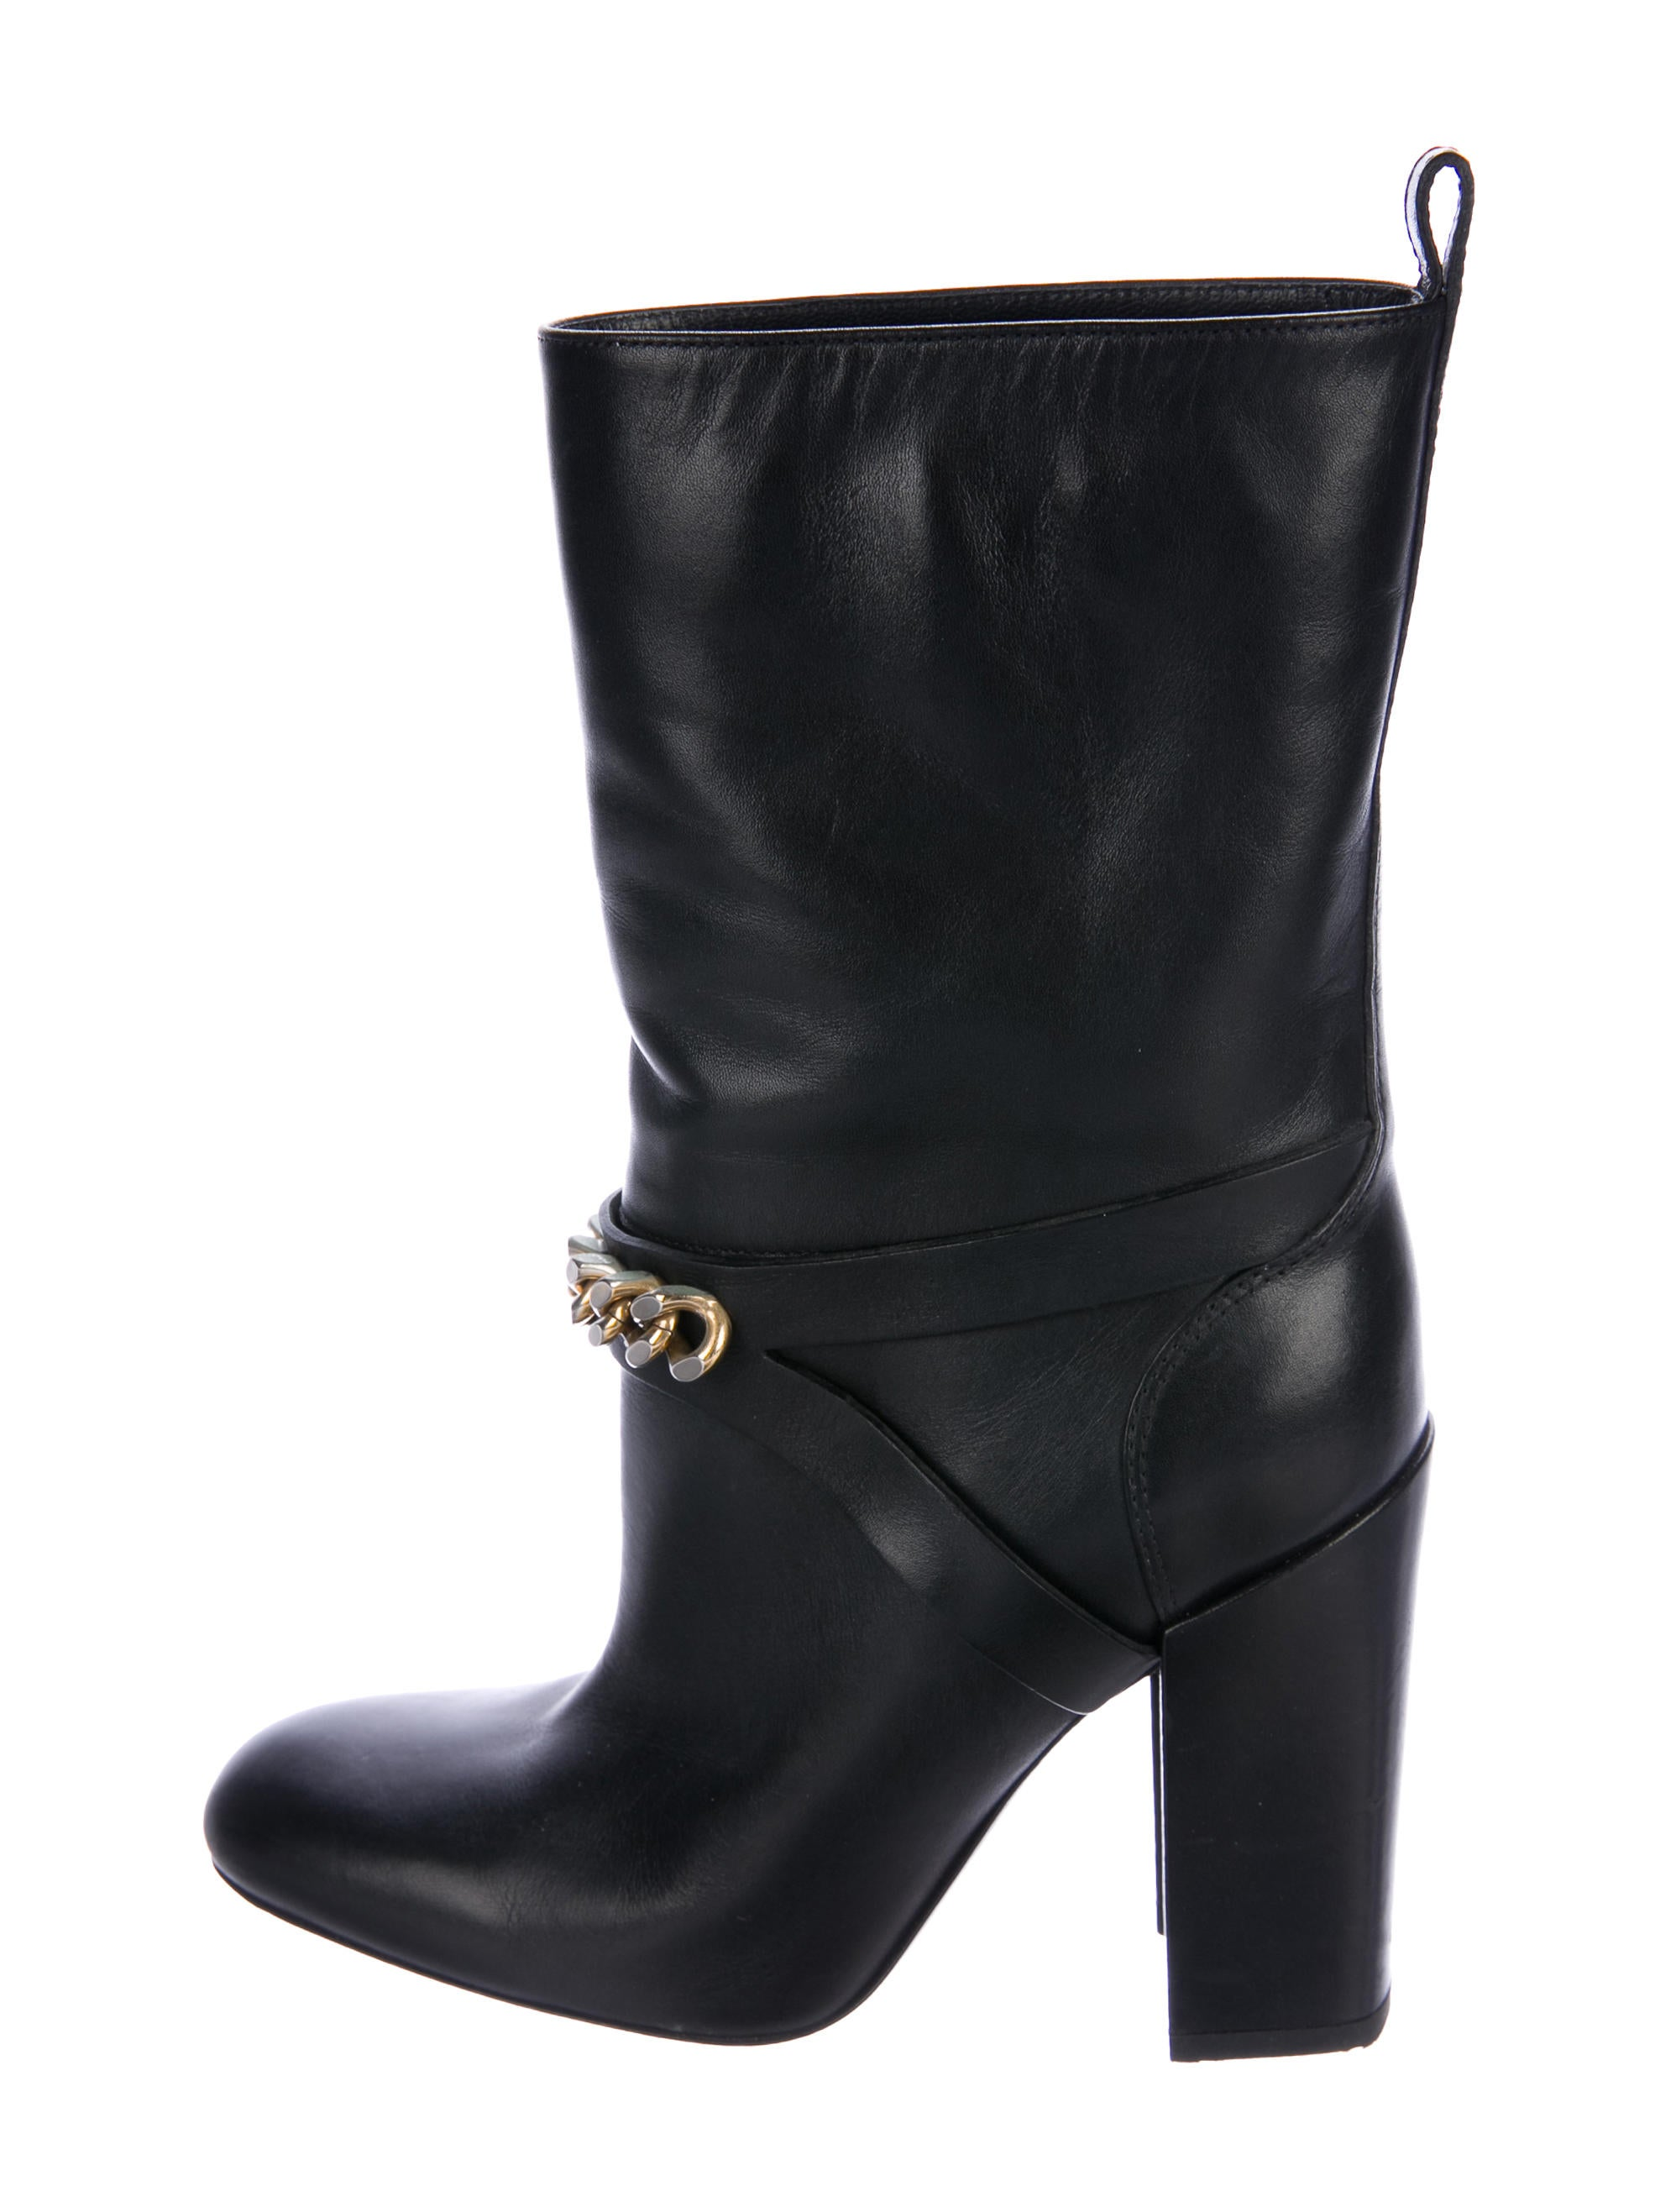 Saint Laurent Leather Chain-Link Booties buy cheap amazing price RHlpL8paG